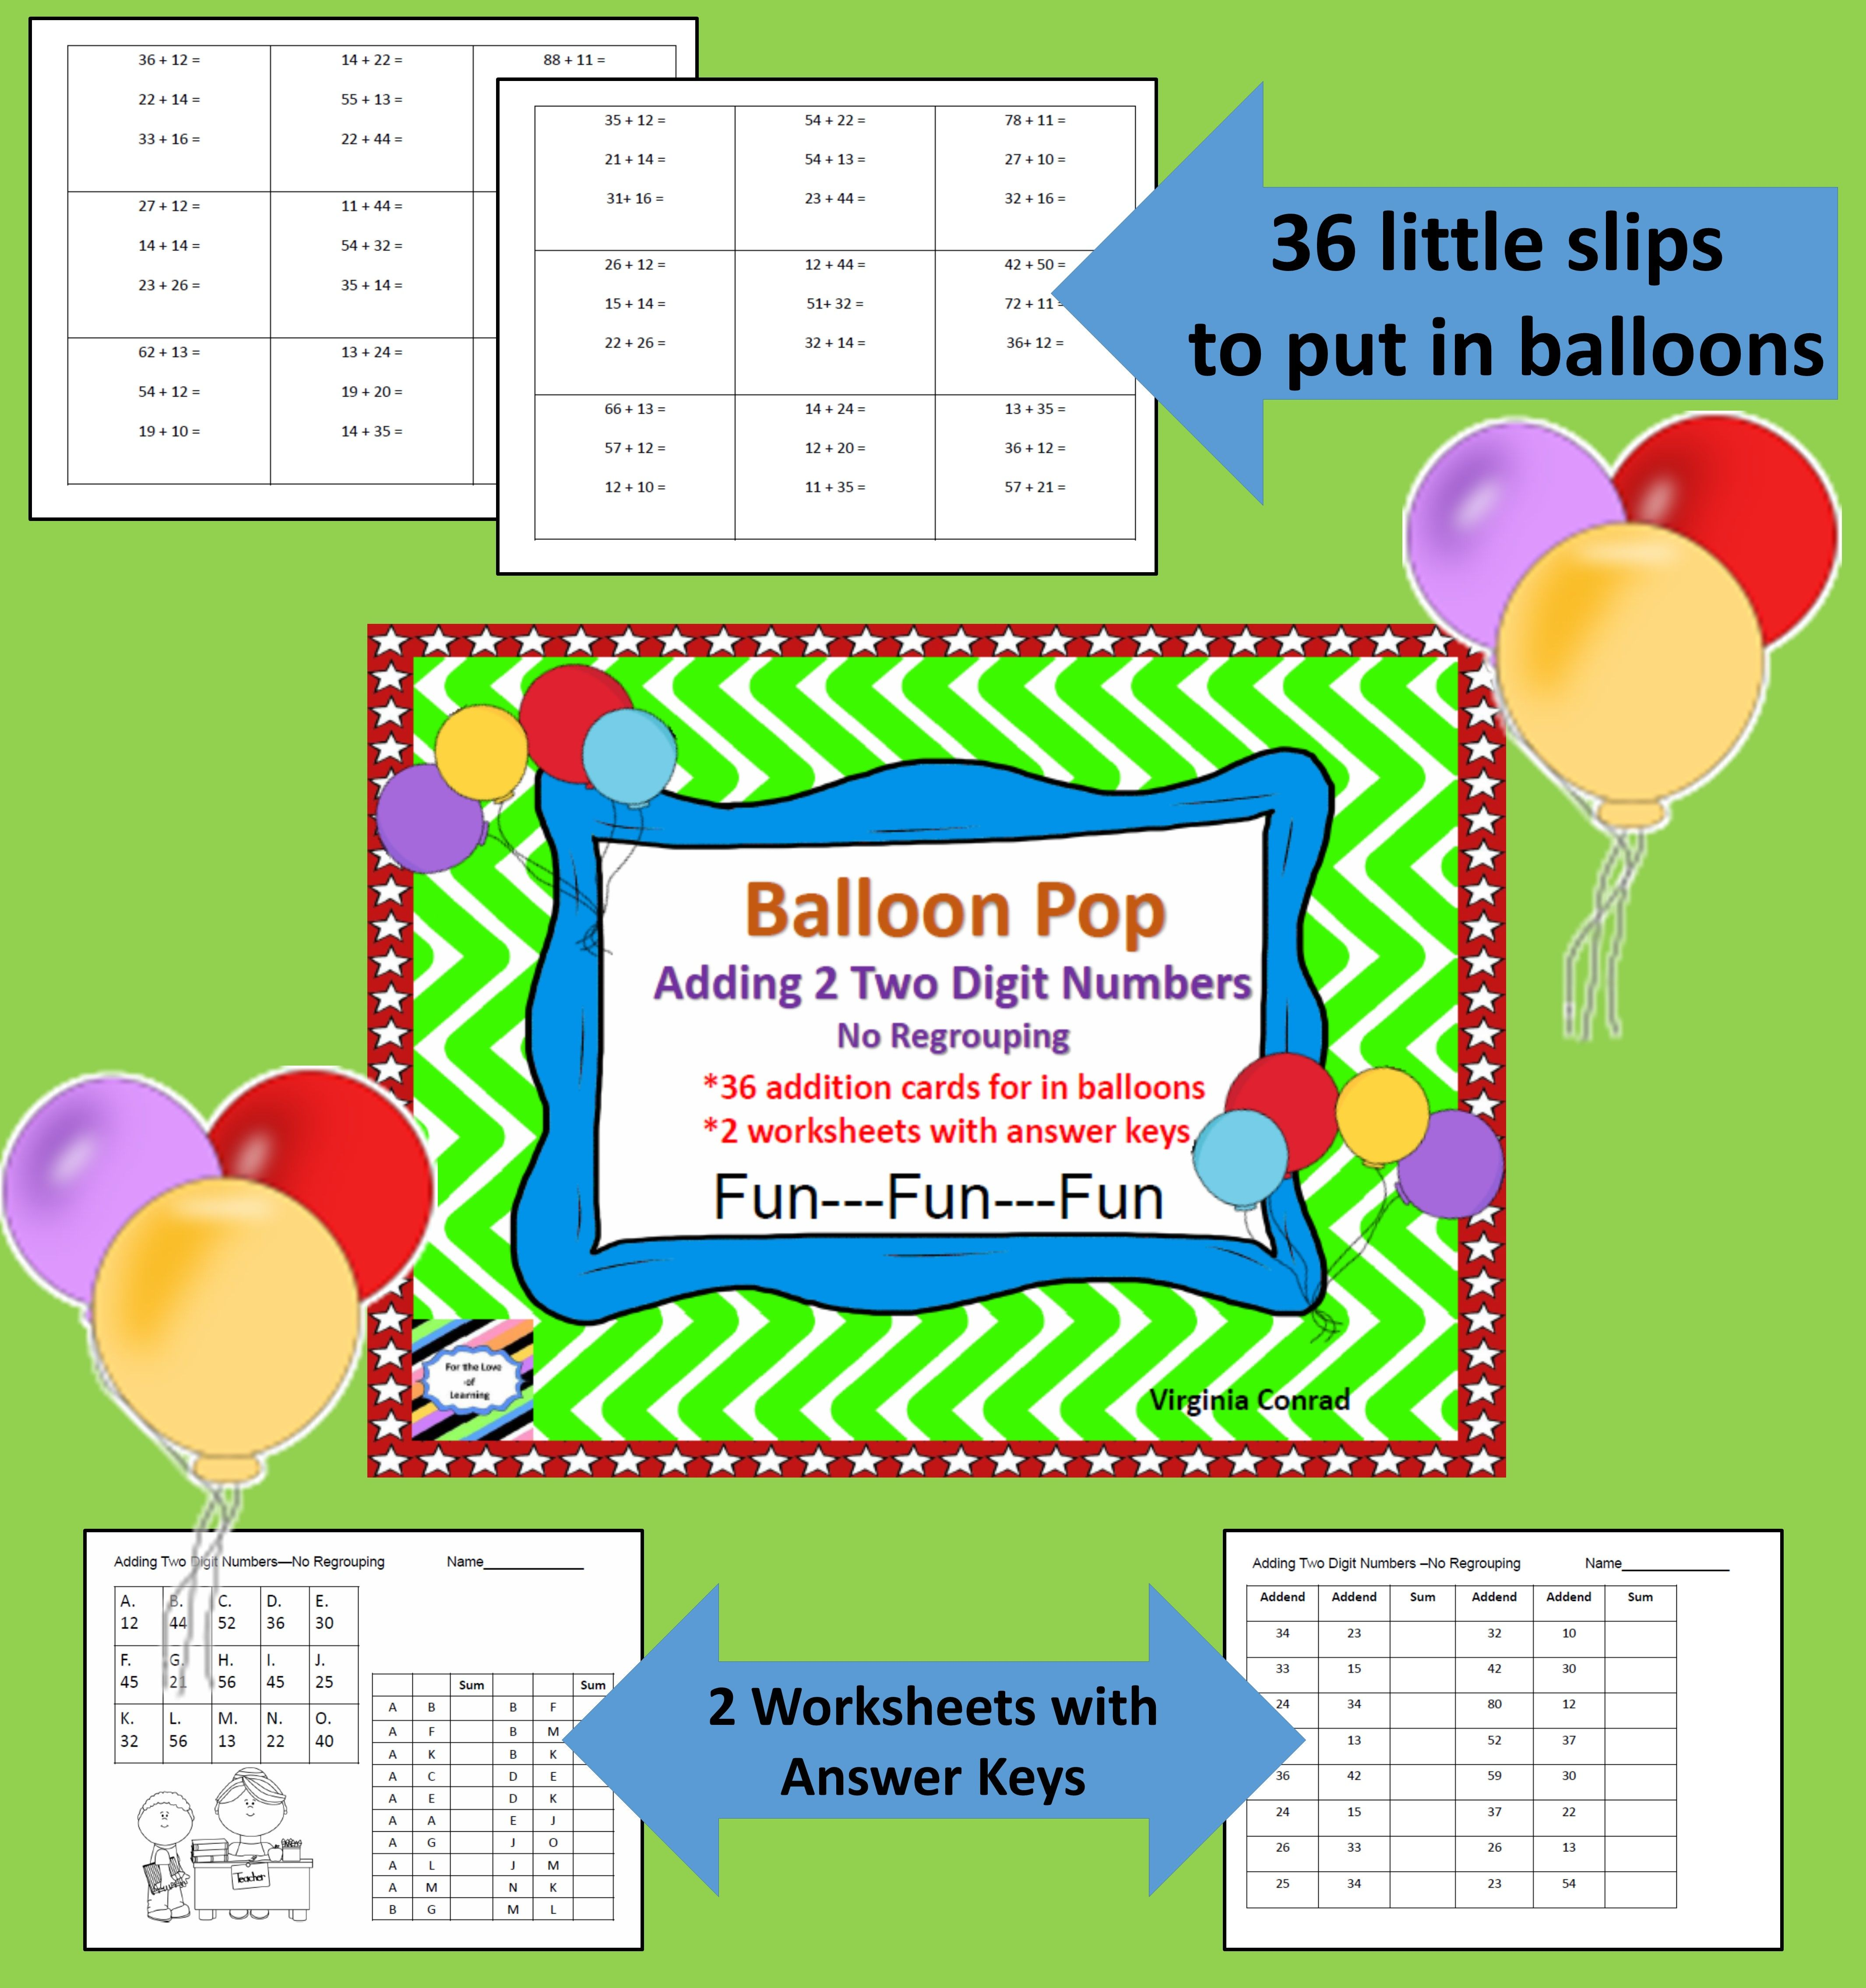 Adding 2 Two Digit Numbers Without Regrouping Balloon Pop